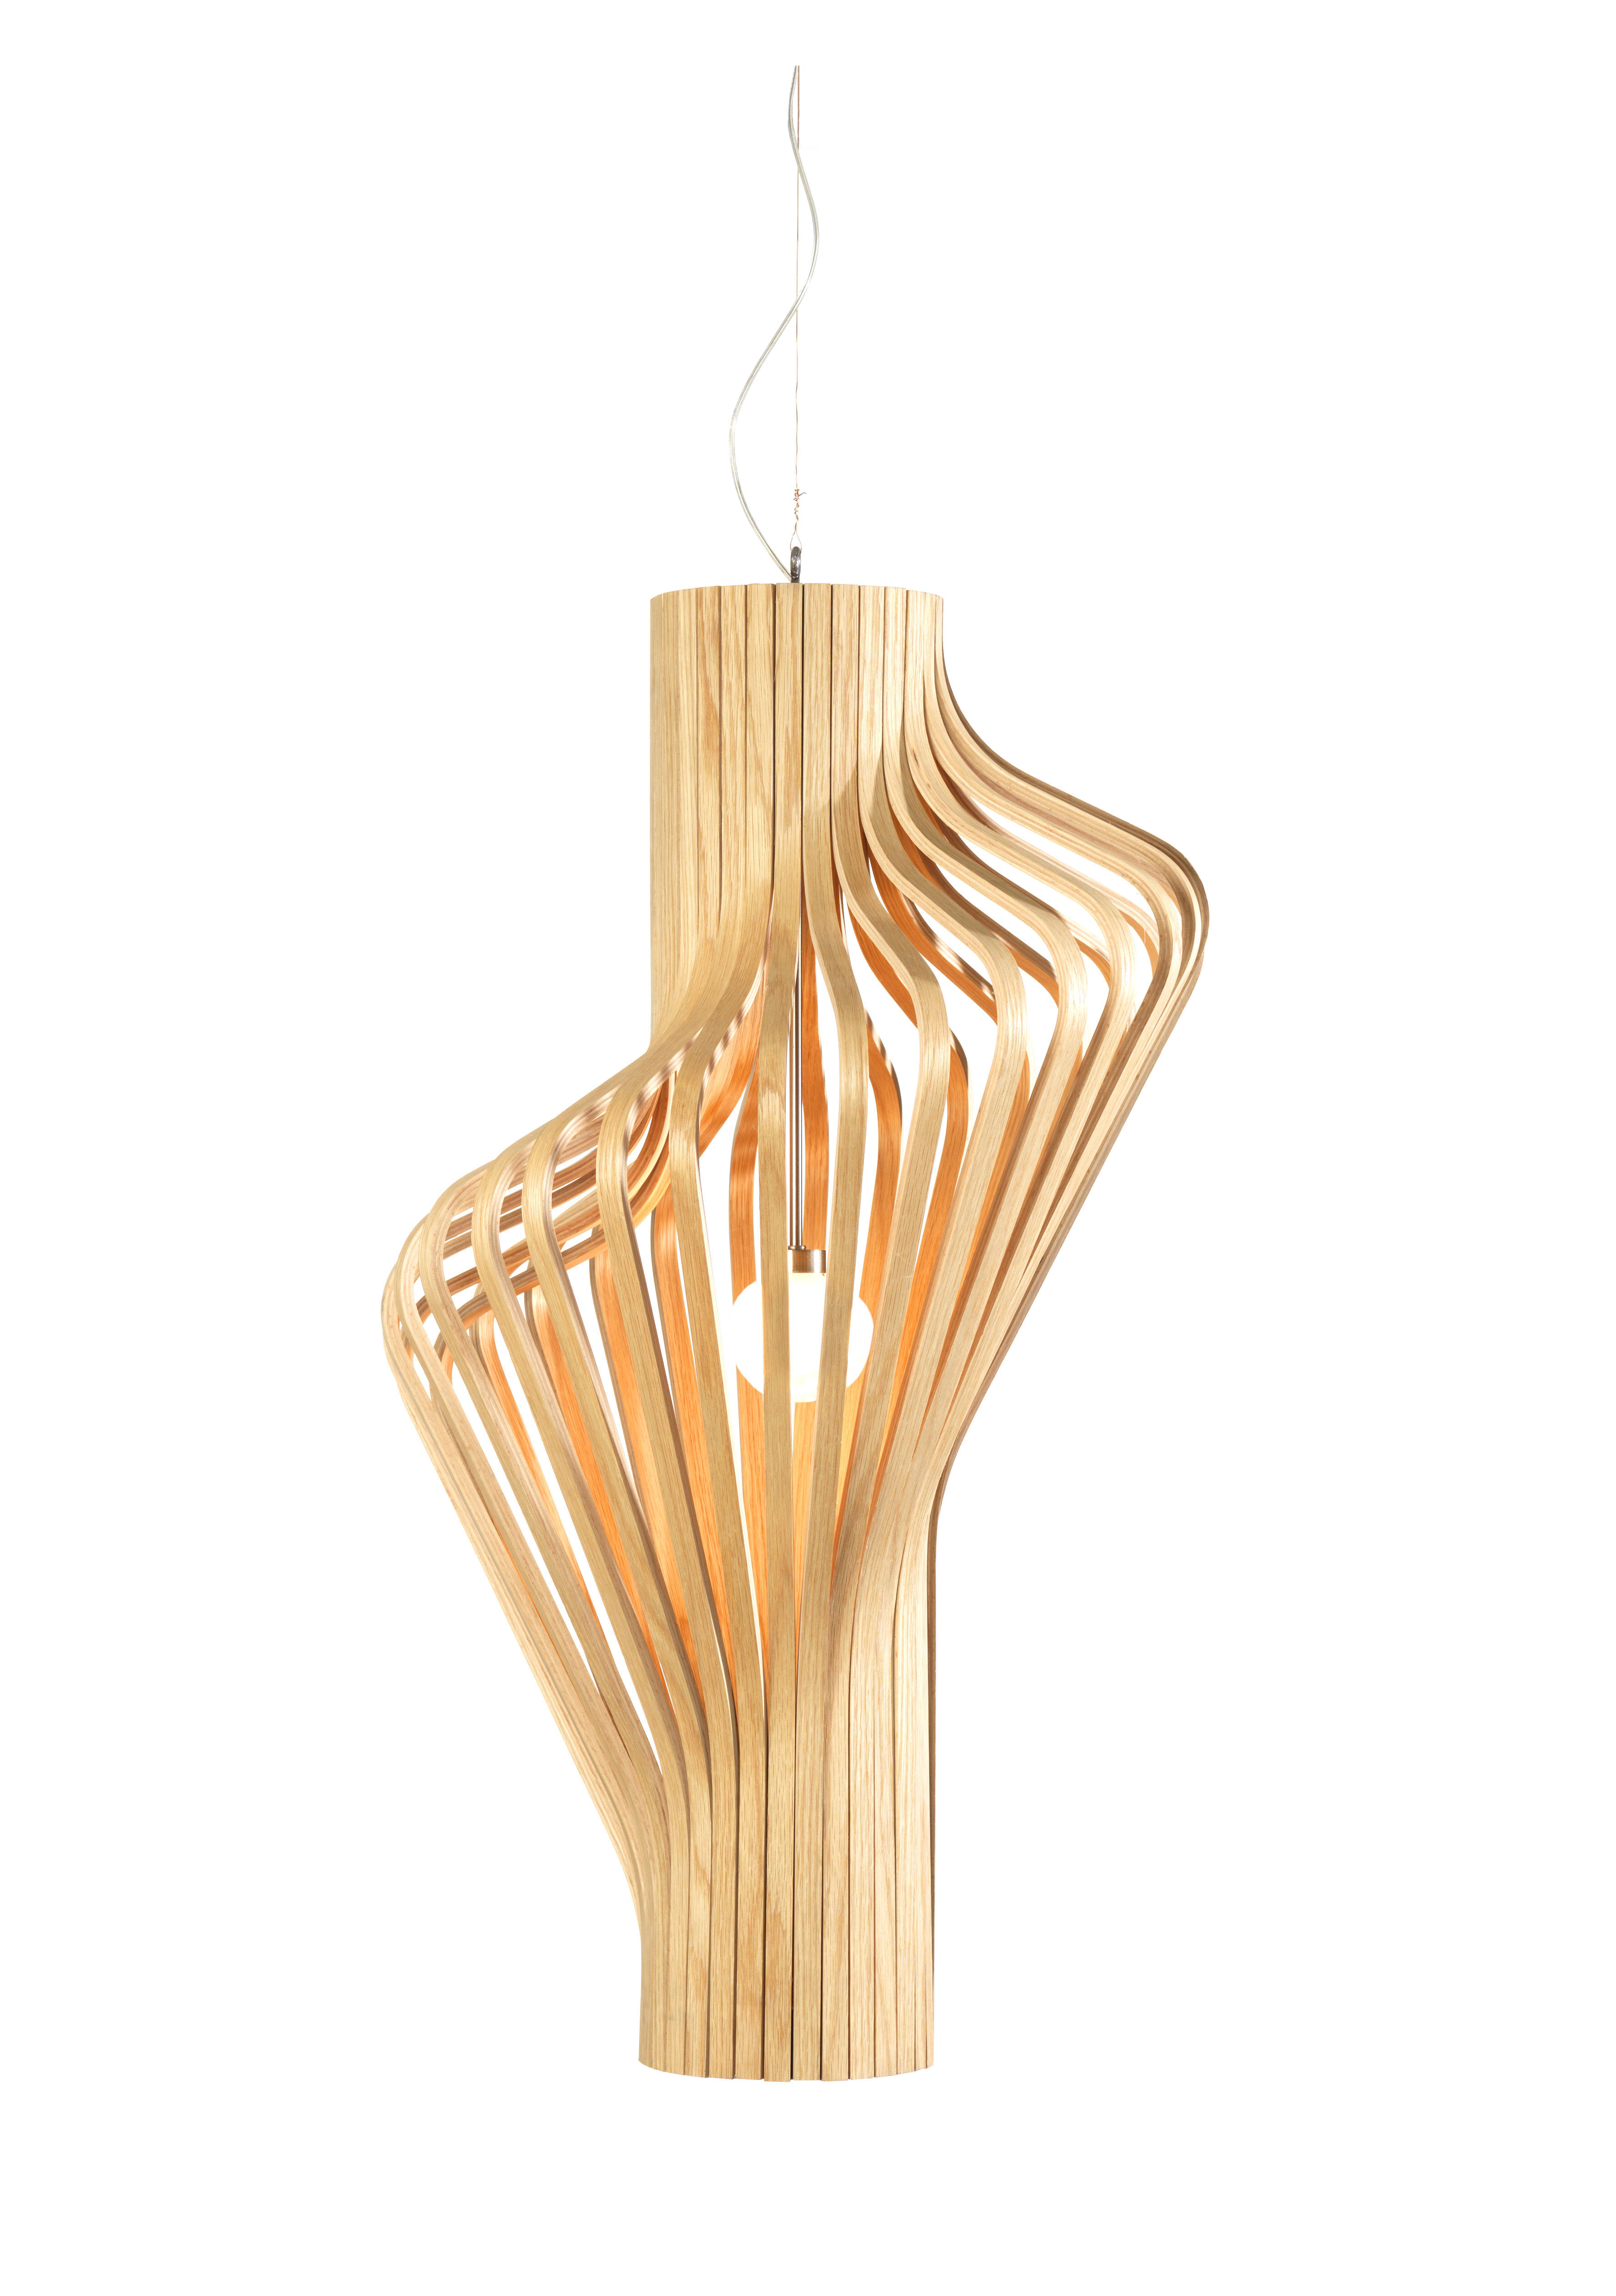 Lighting - Pendant Lighting - Diva Pendant - H 80 cm by Northern  - Oak - Mouth blown glass, Oak plywood